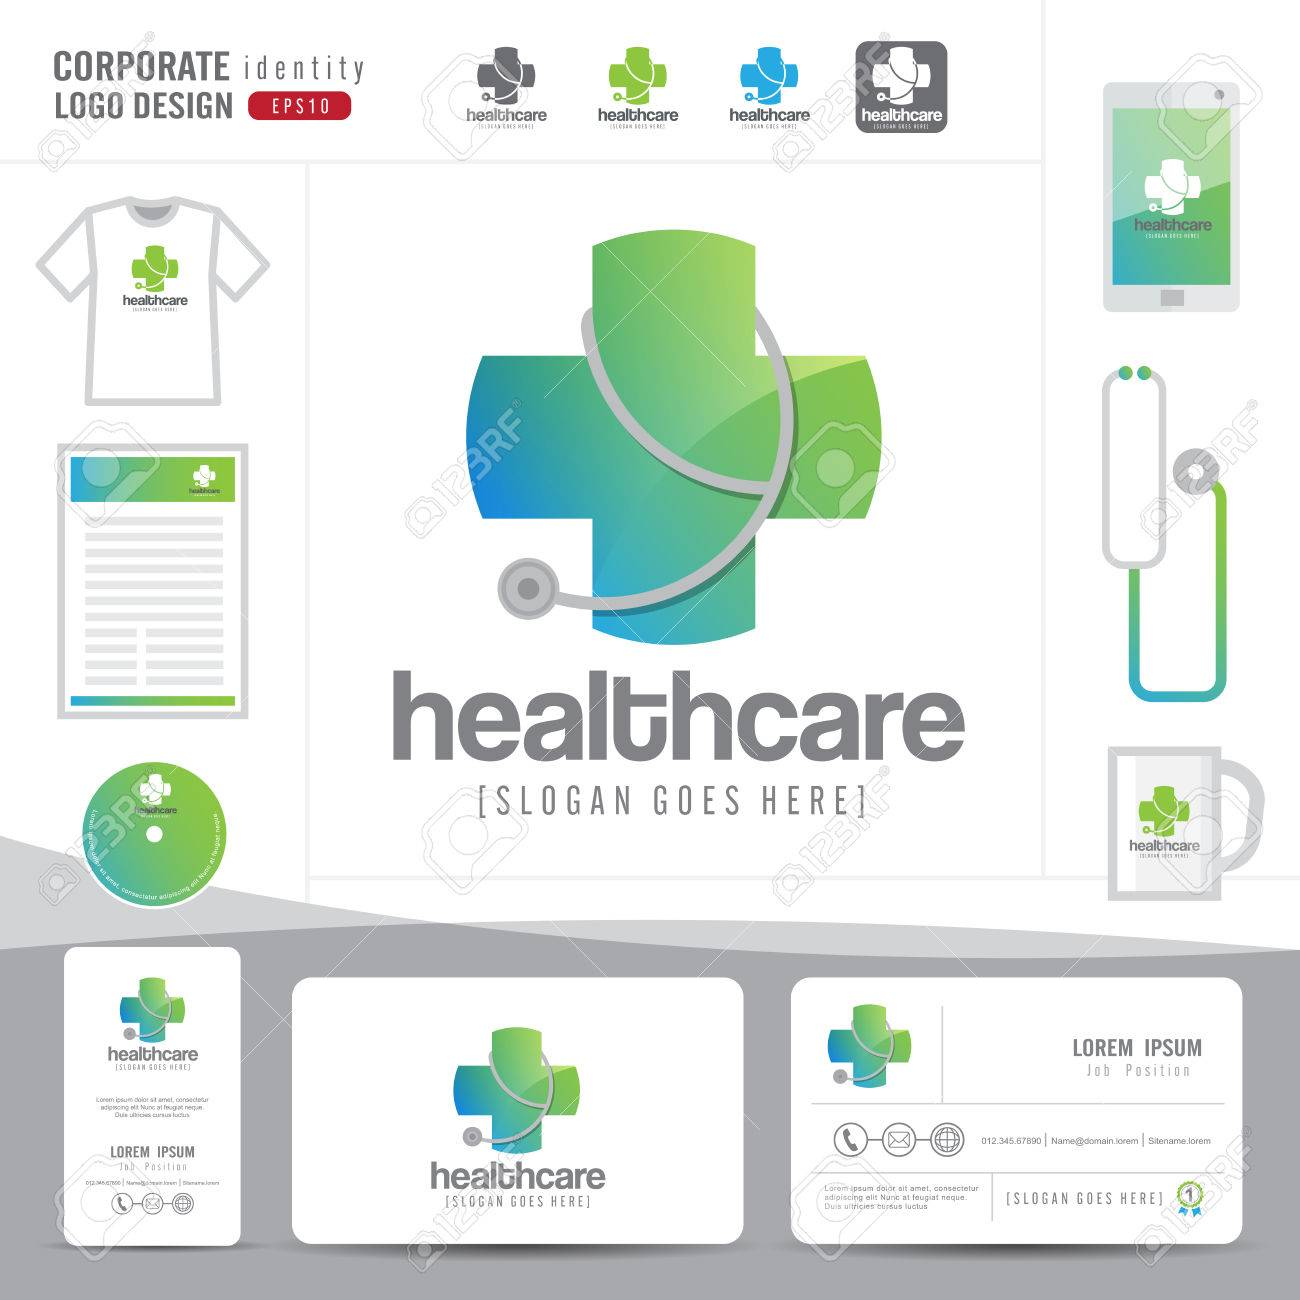 Logo design medical healthcare or hospital and business card banco de imagens logo design medical healthcare or hospital and business card template with clean and modern flat patterncorporate identityvector reheart Images